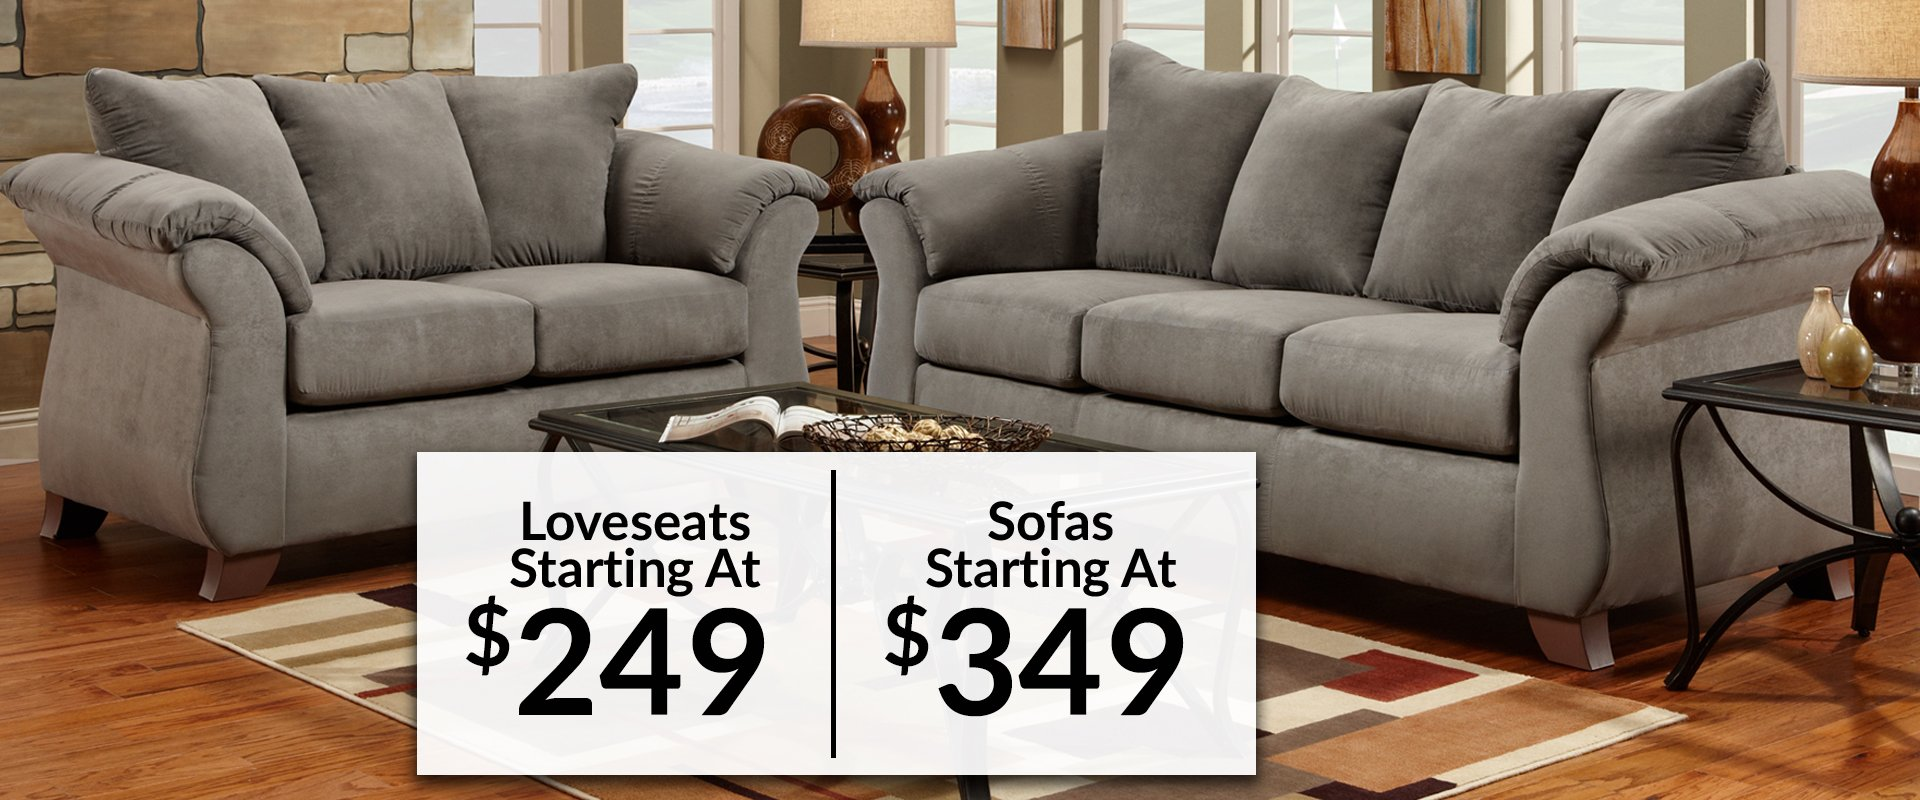 Lowry's sofa and loveseat set